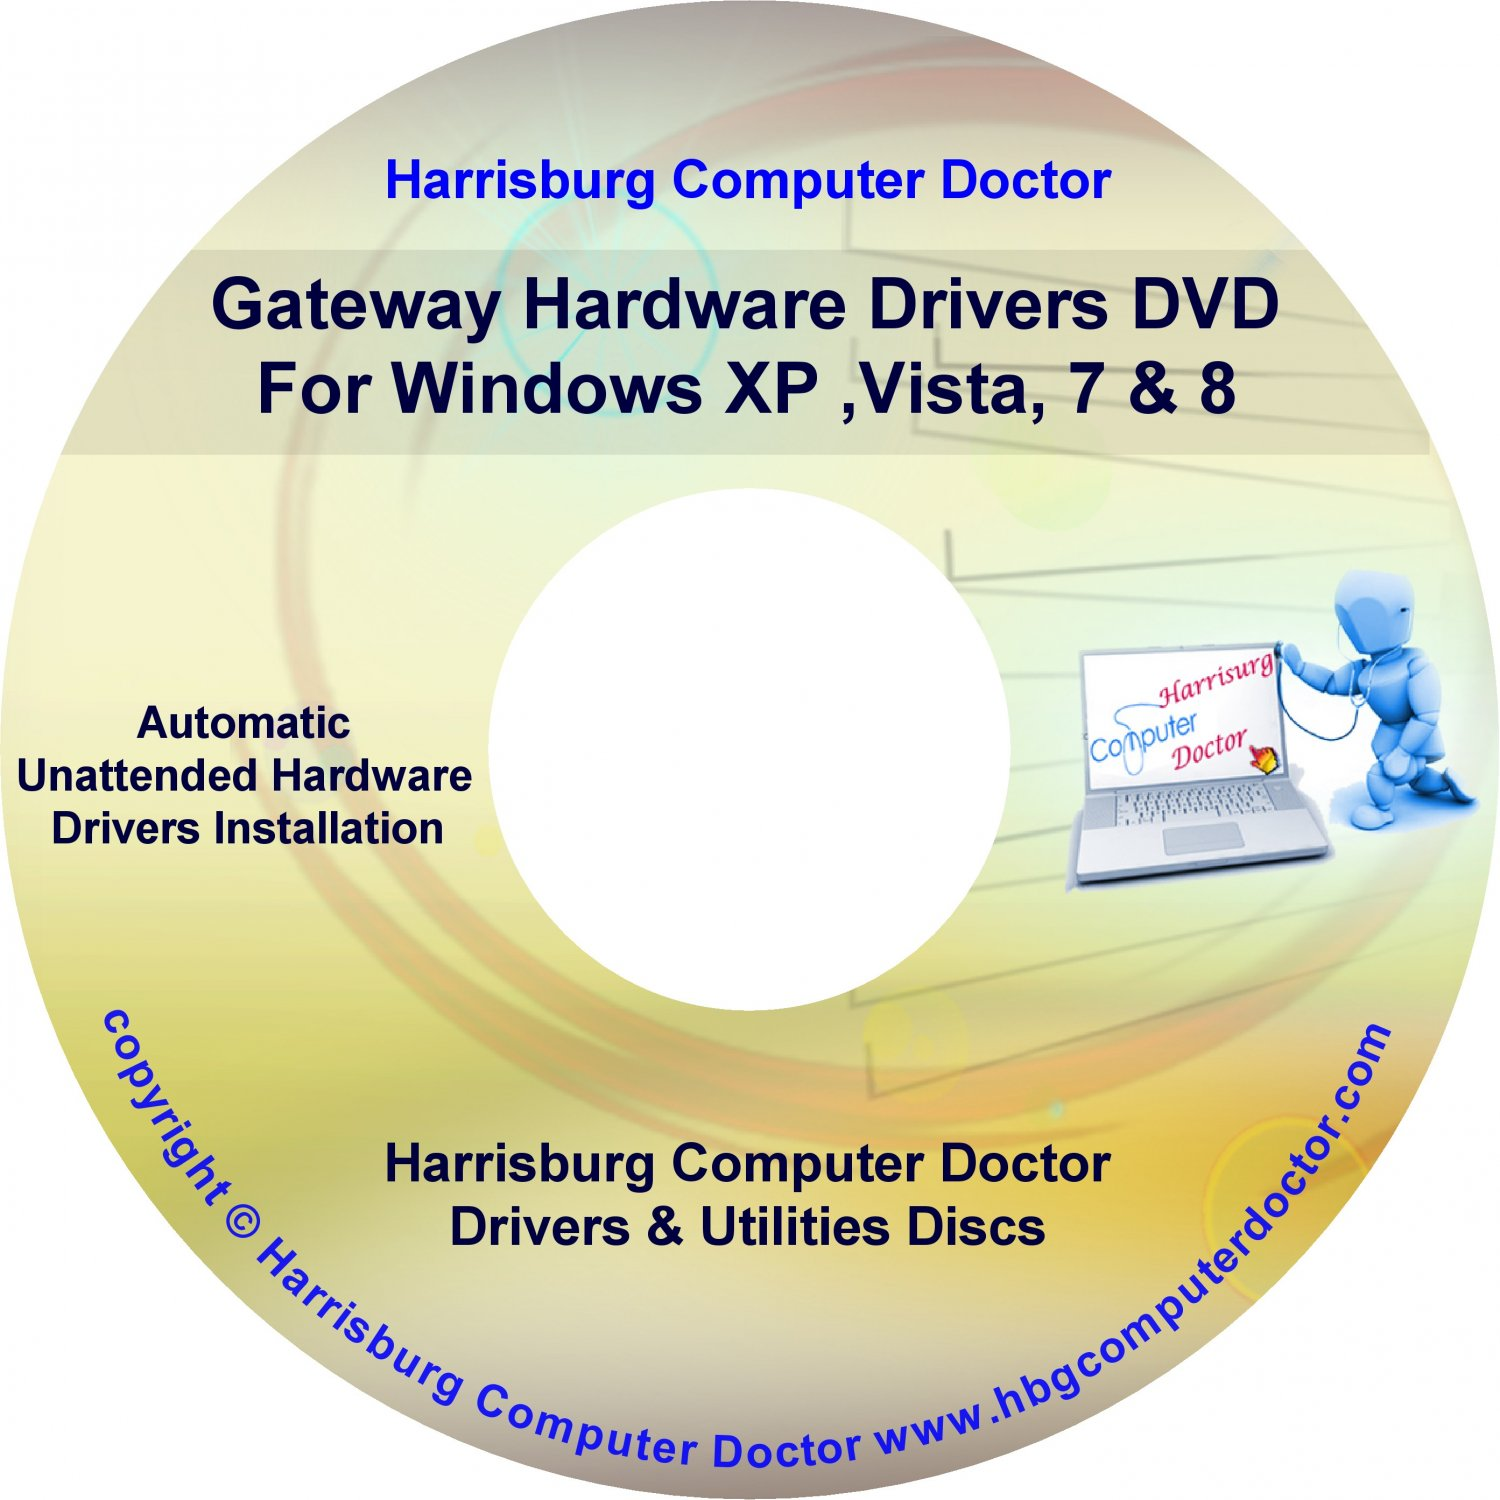 Gateway MX6938m Drivers DVD For Windows, XP, Vista, 7 & 8